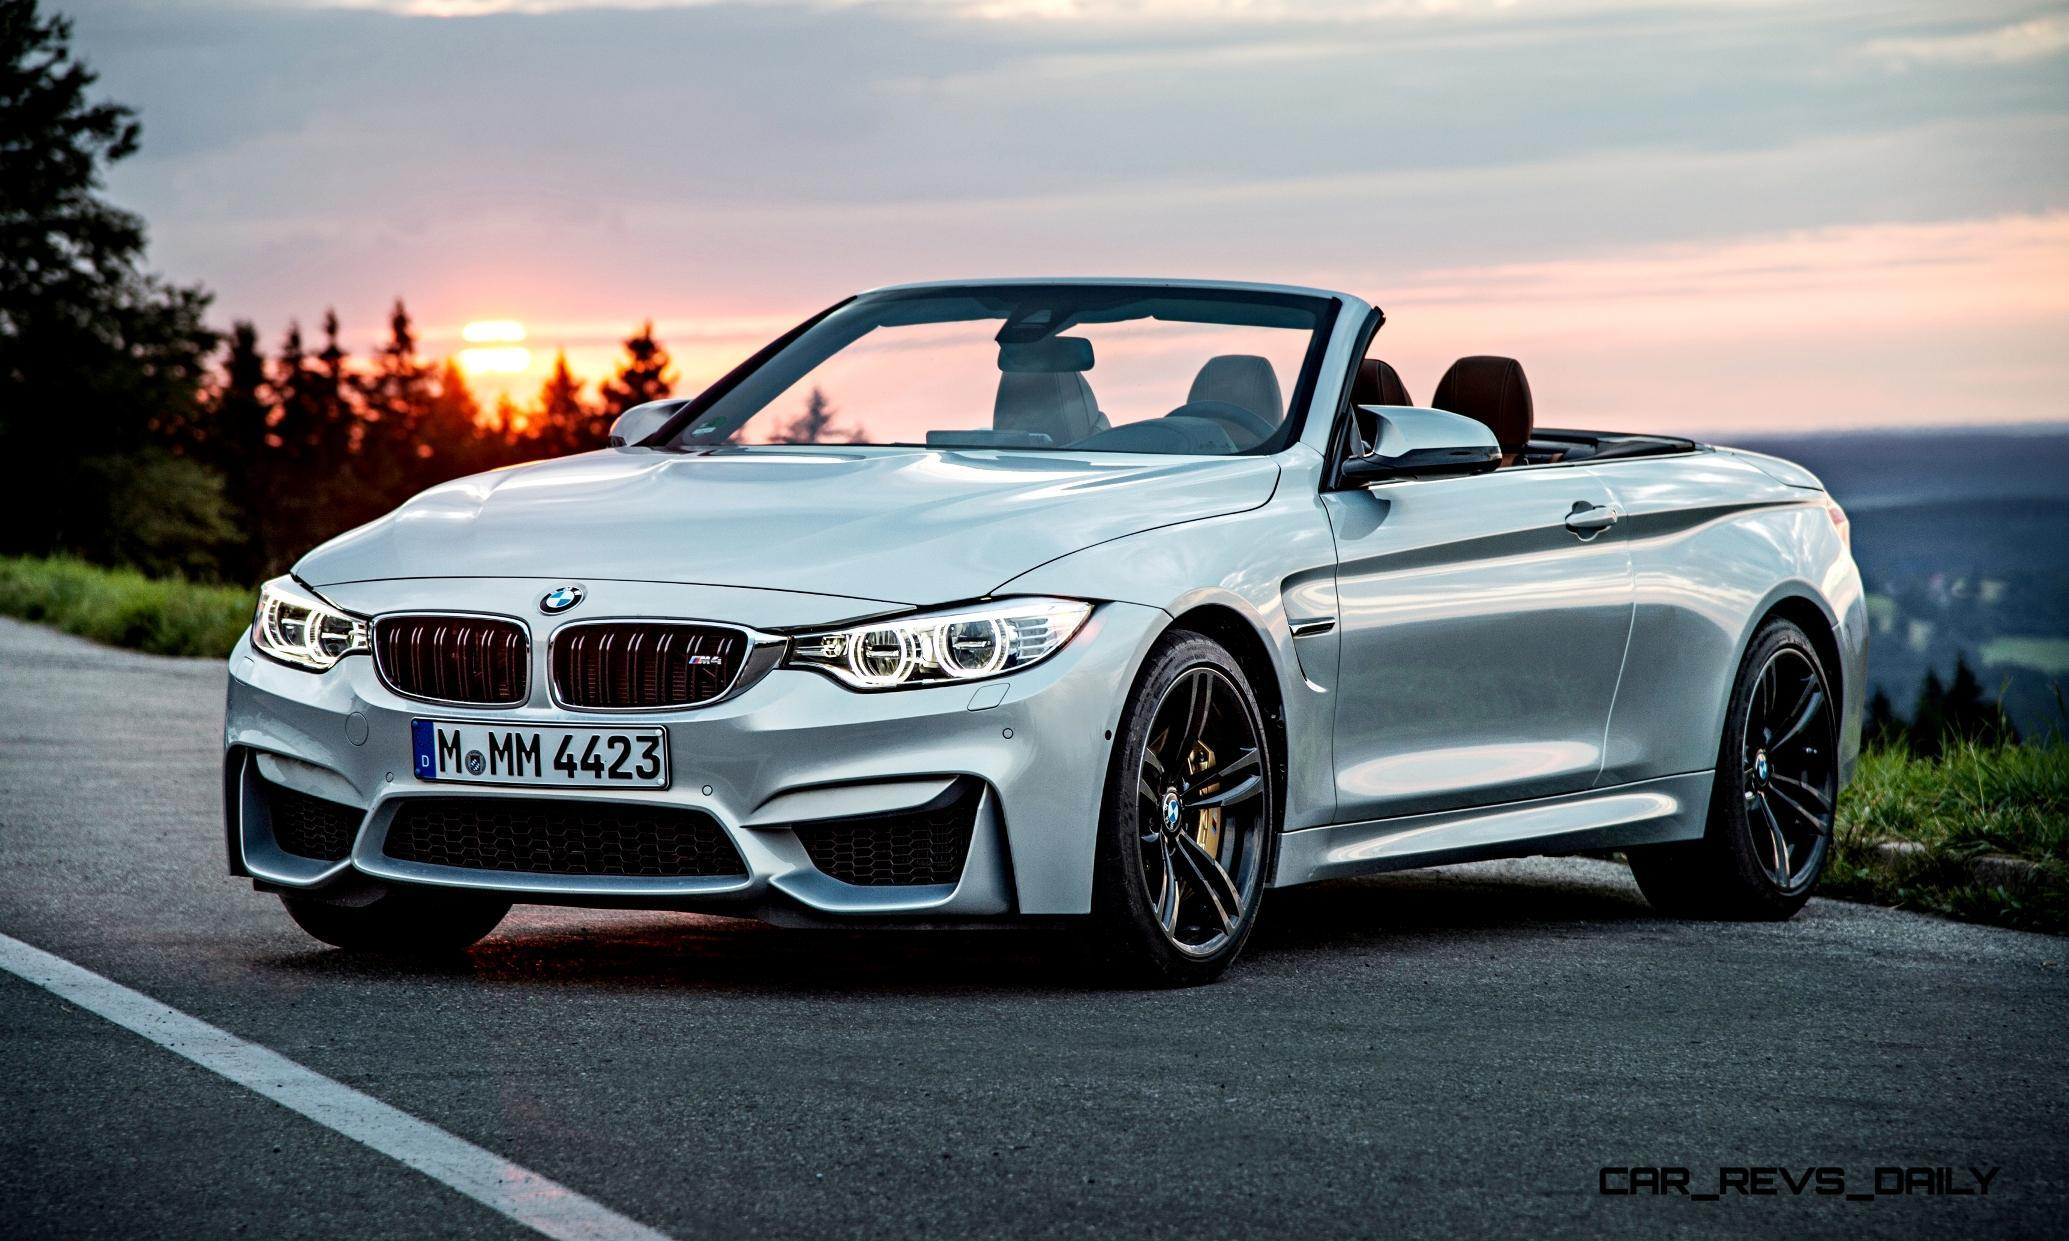 98 new photos 2015 bmw m4 convertible pricing colors. Black Bedroom Furniture Sets. Home Design Ideas